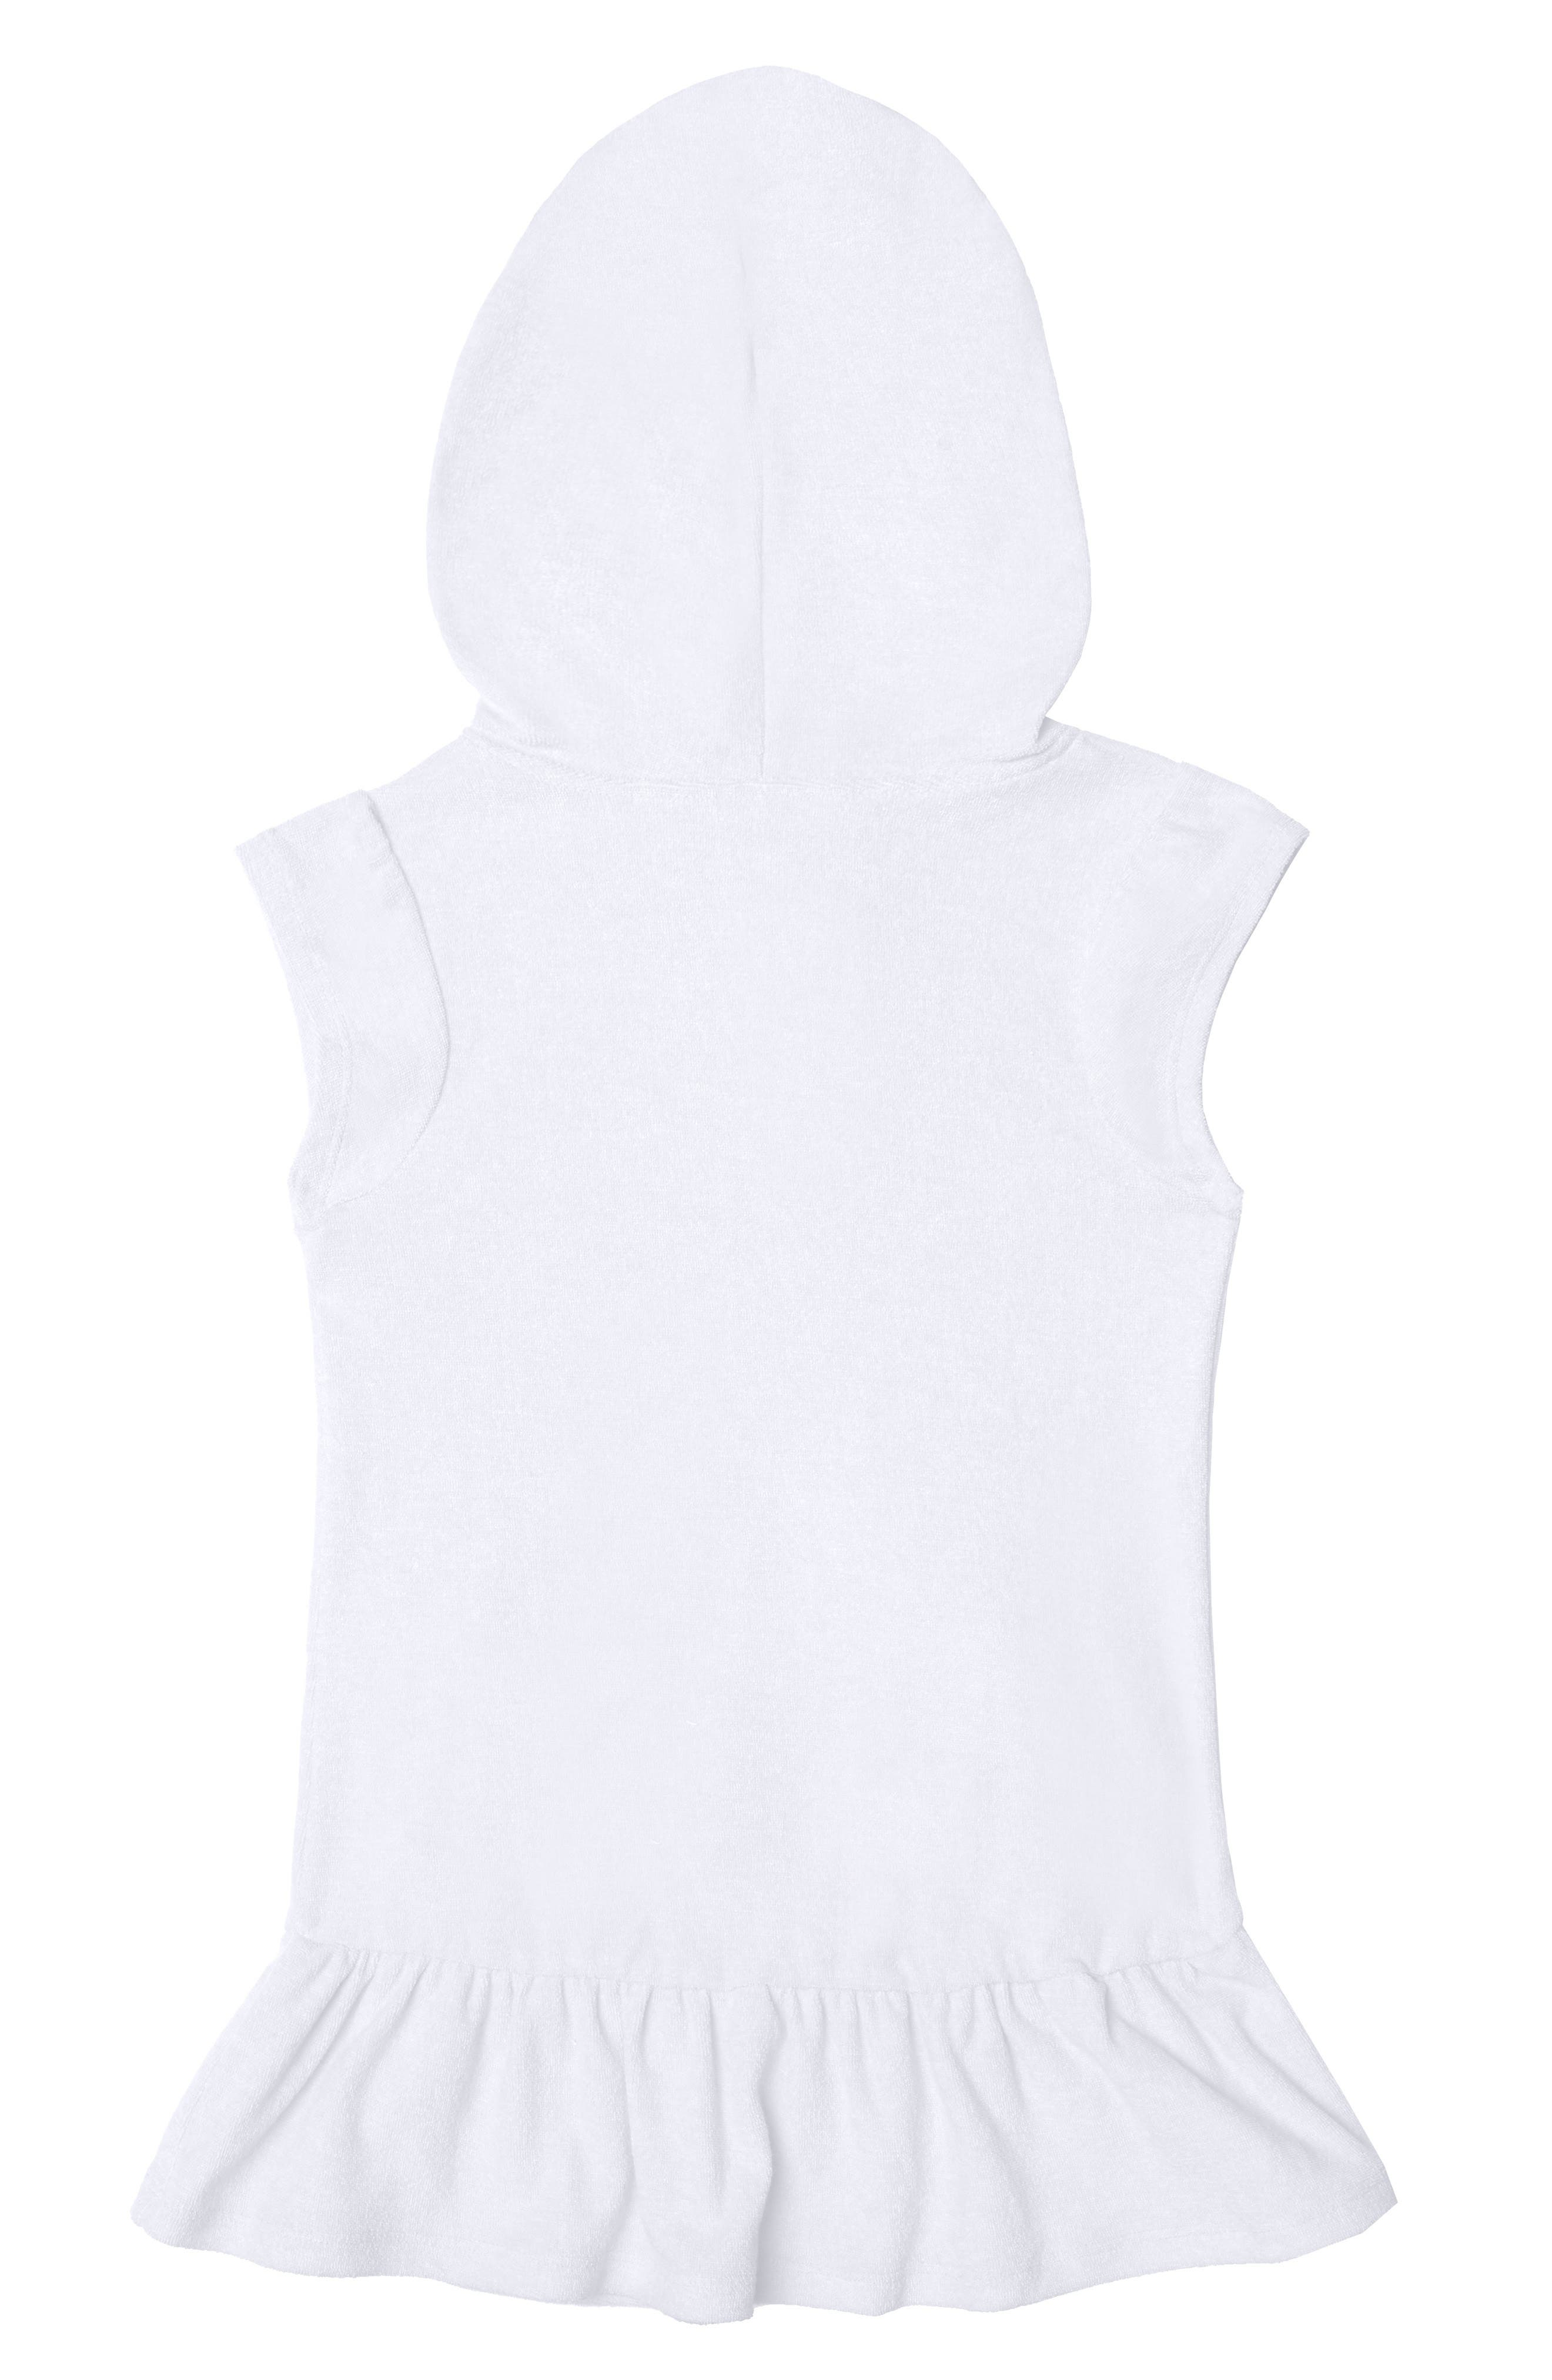 HULA STAR,                             Cotton Cloud Hooded Cover-Up Dress,                             Alternate thumbnail 2, color,                             WHITE